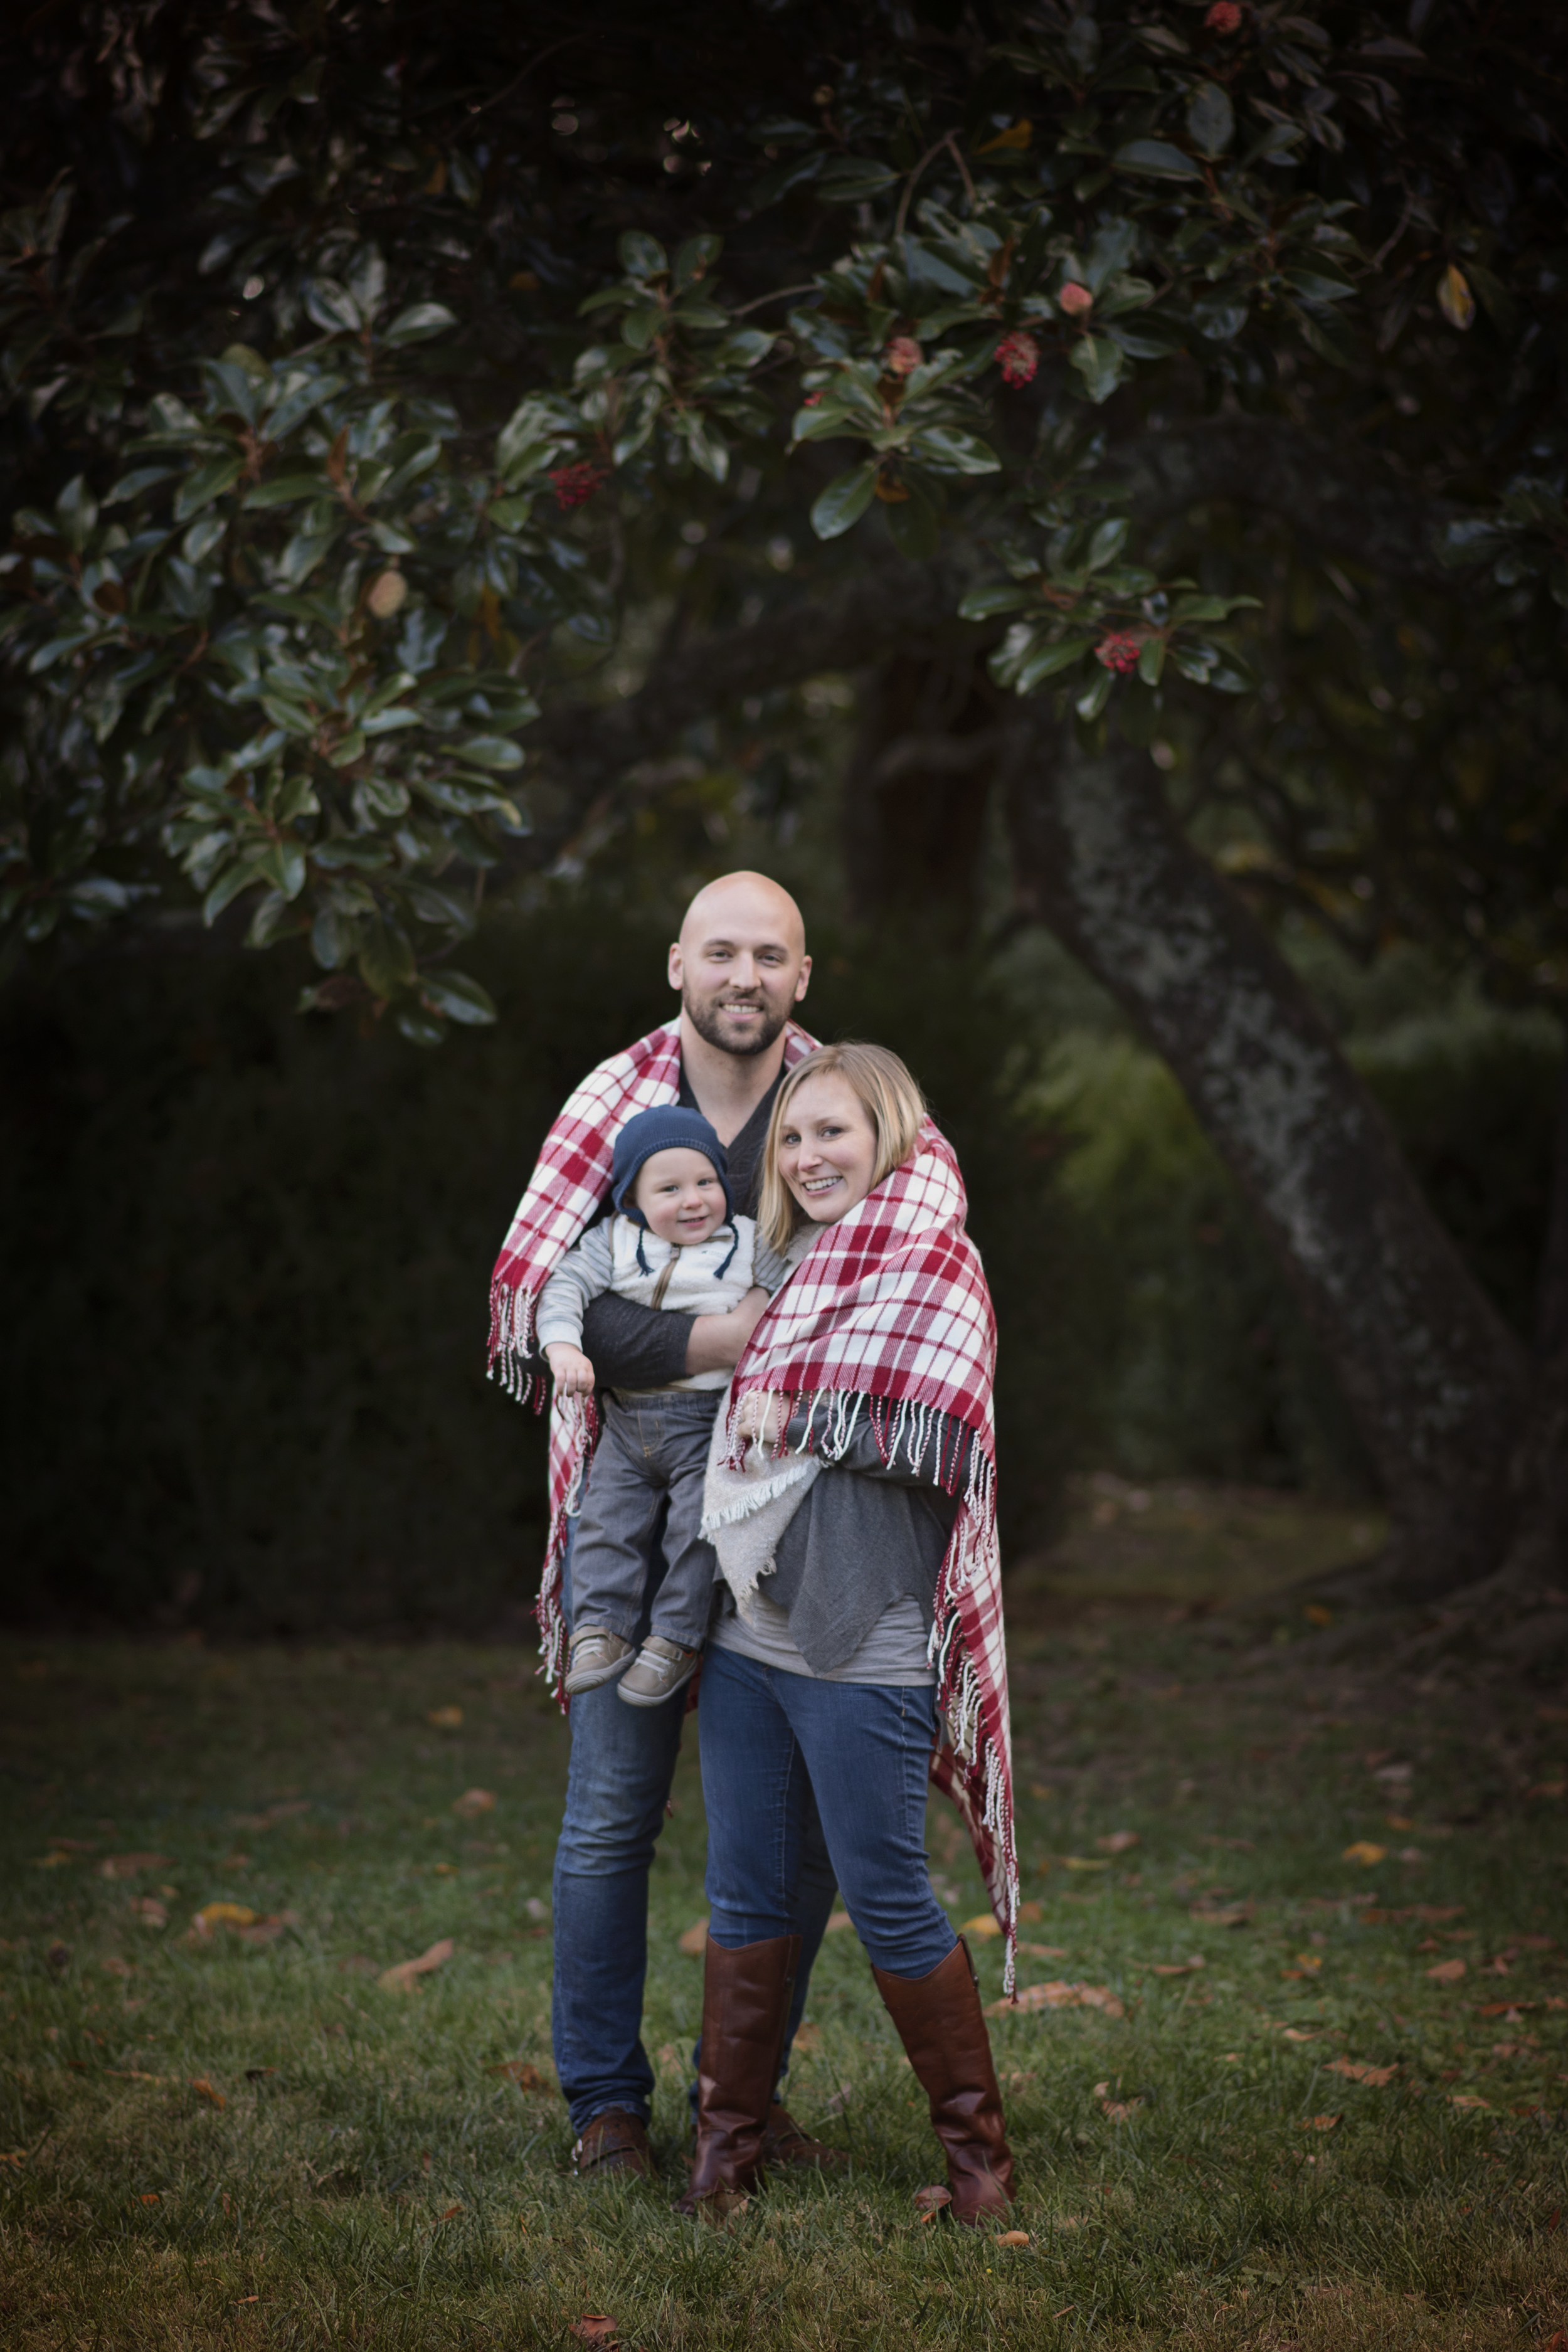 Fall Family with Blanket Arlington Photographer Kate Montaner Photography